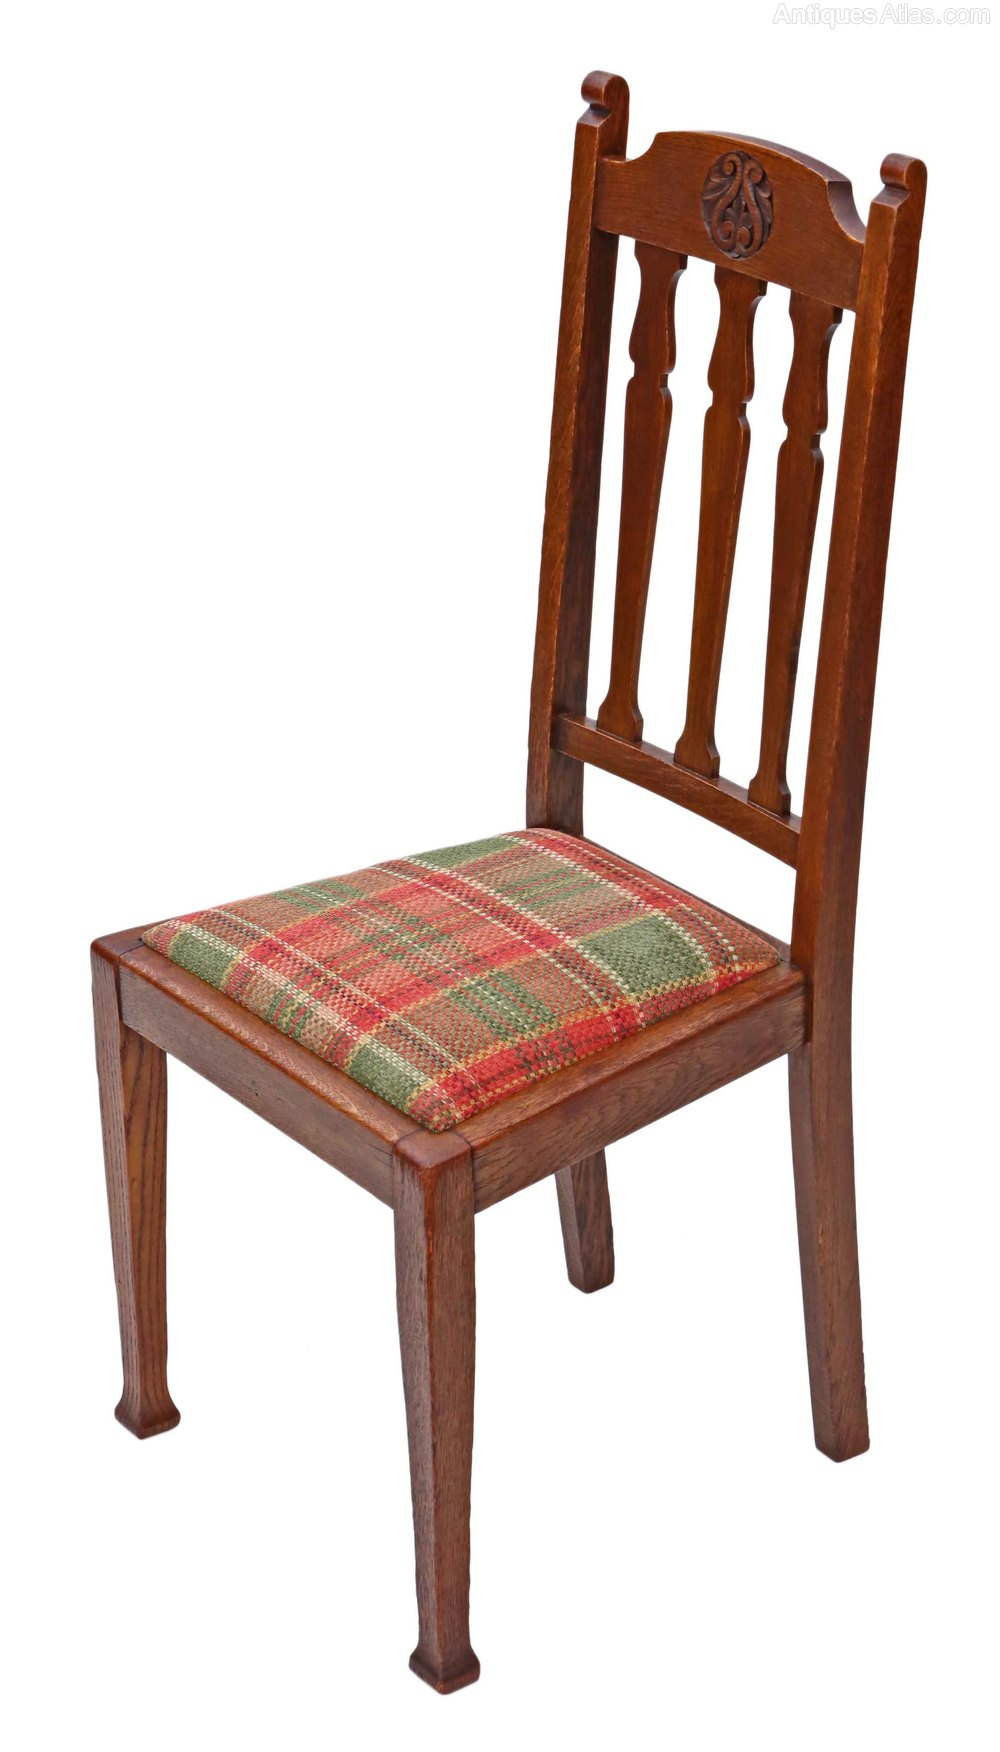 Dining chairs 4 dining room chairs ebay teak dining for 4 dining room chairs ebay